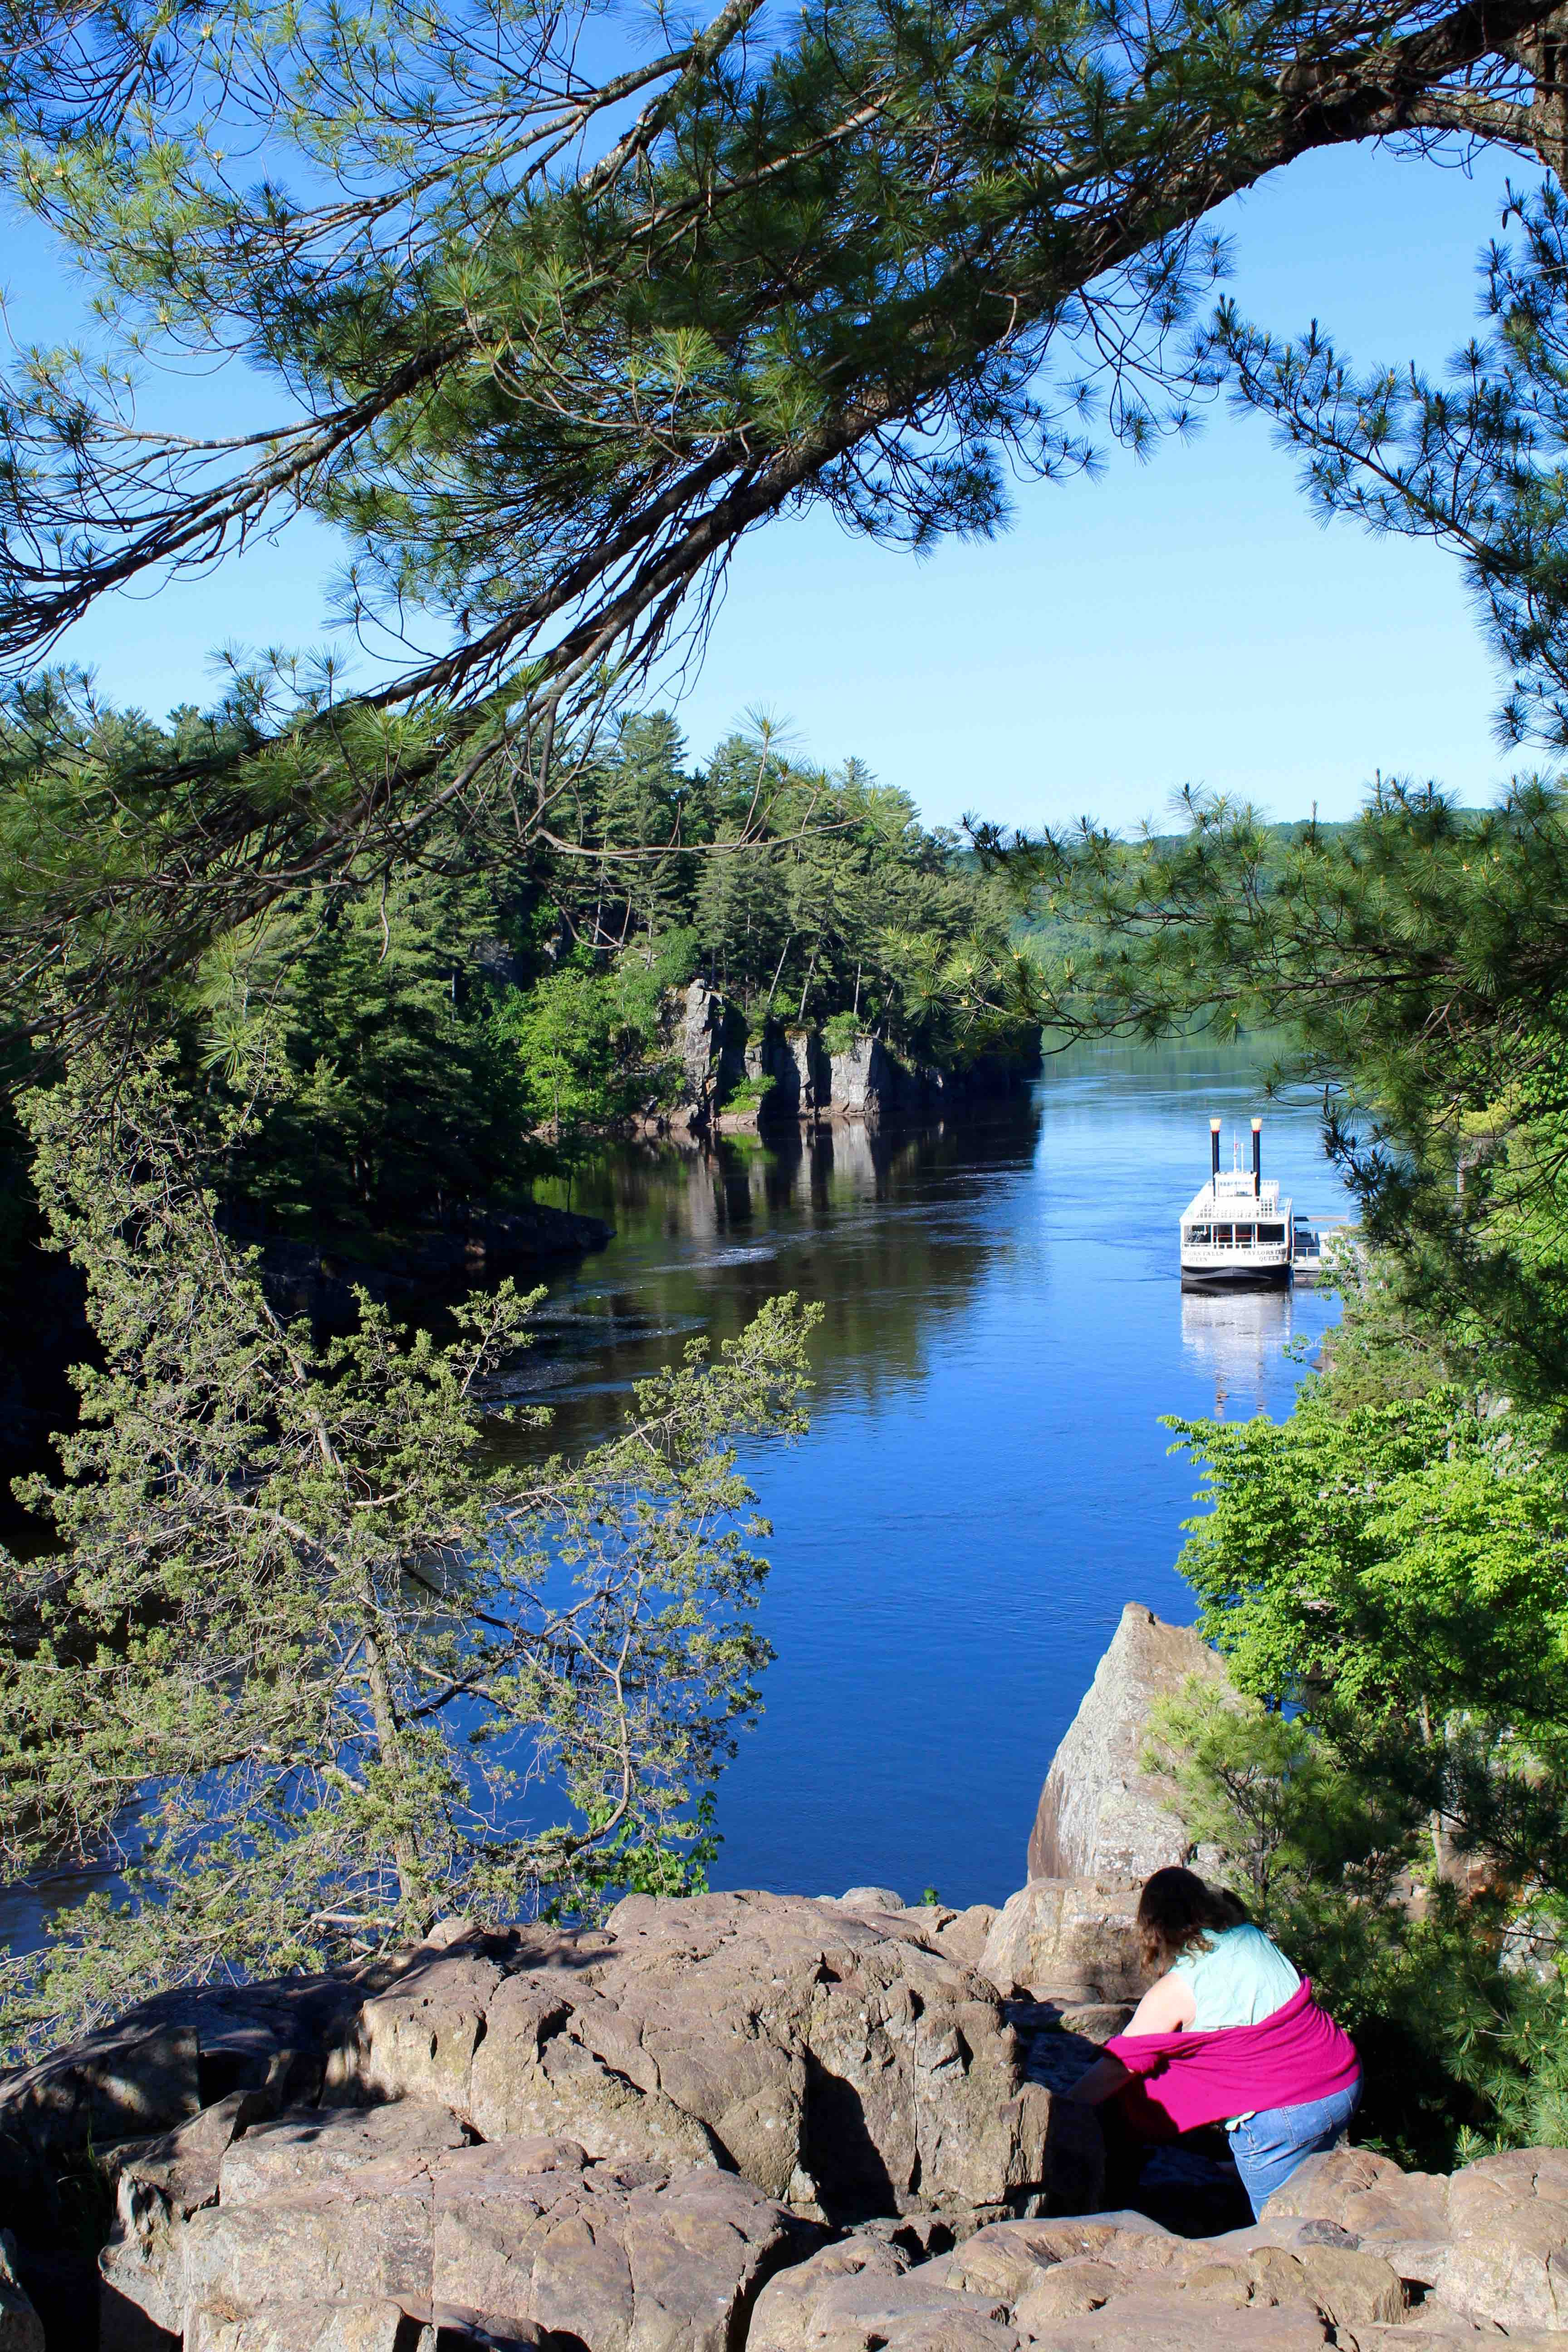 Taylors Falls Scenic Boat Tours | A Ride Down the St. Croix River